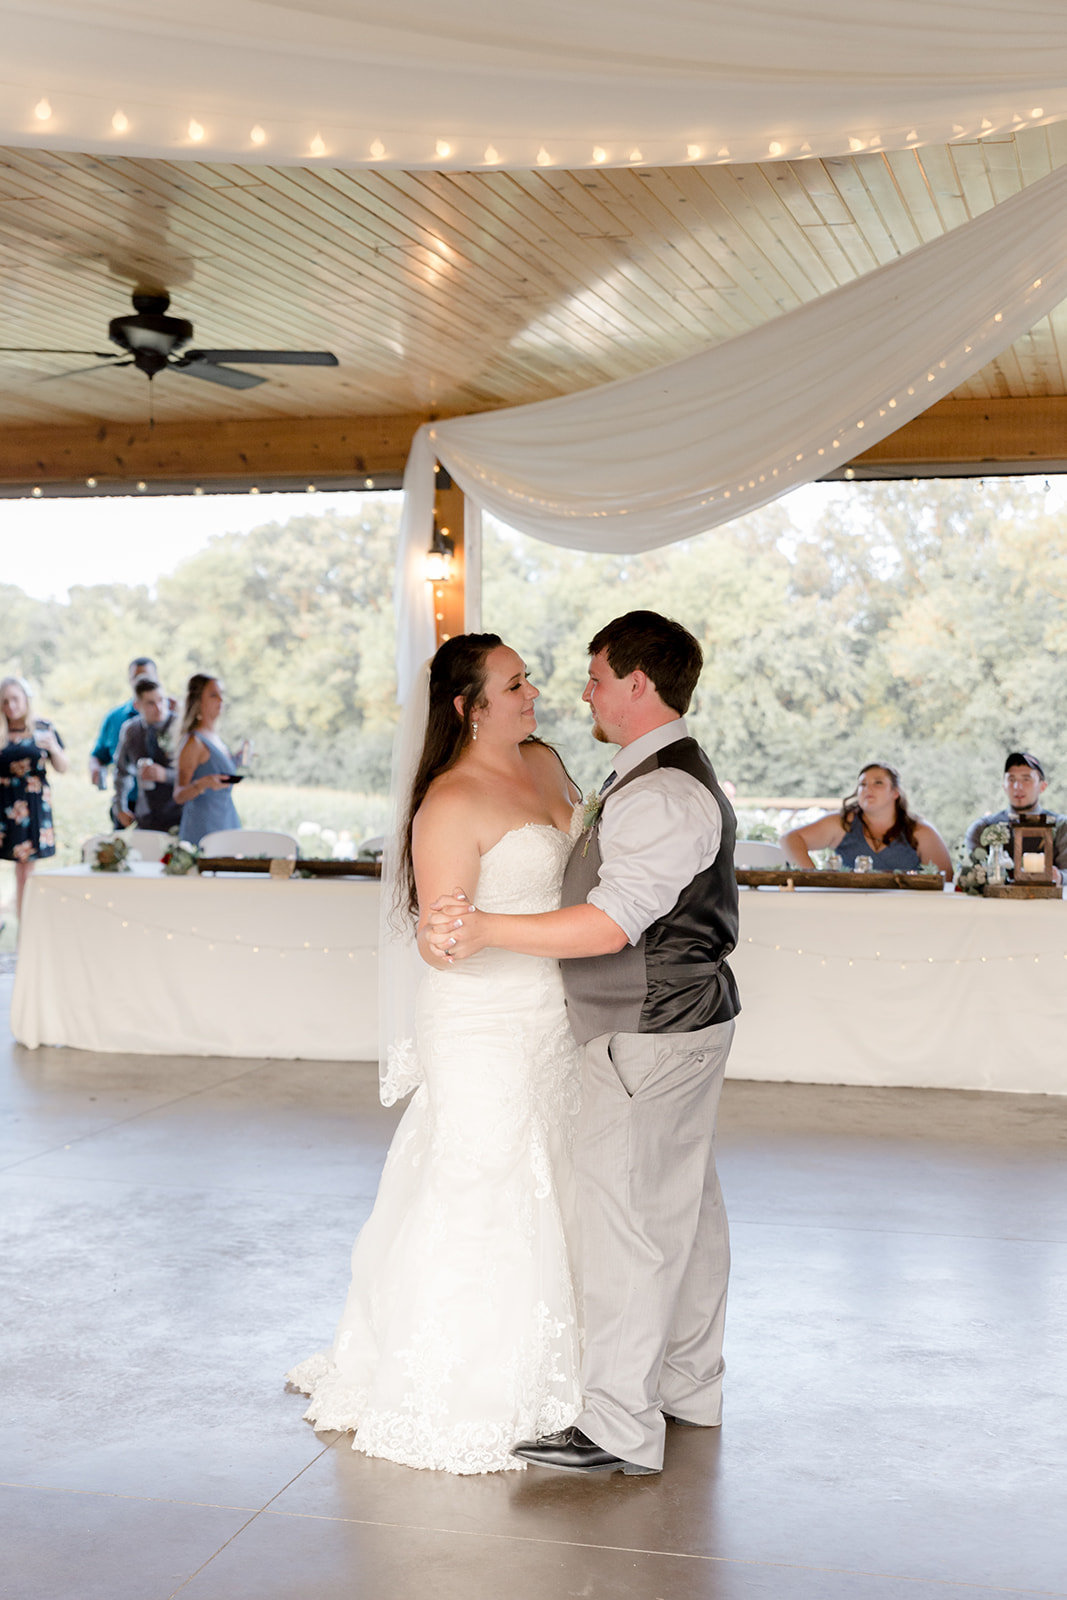 First dance together as bride and groom at Ridgetop in Prescott Wisconsin